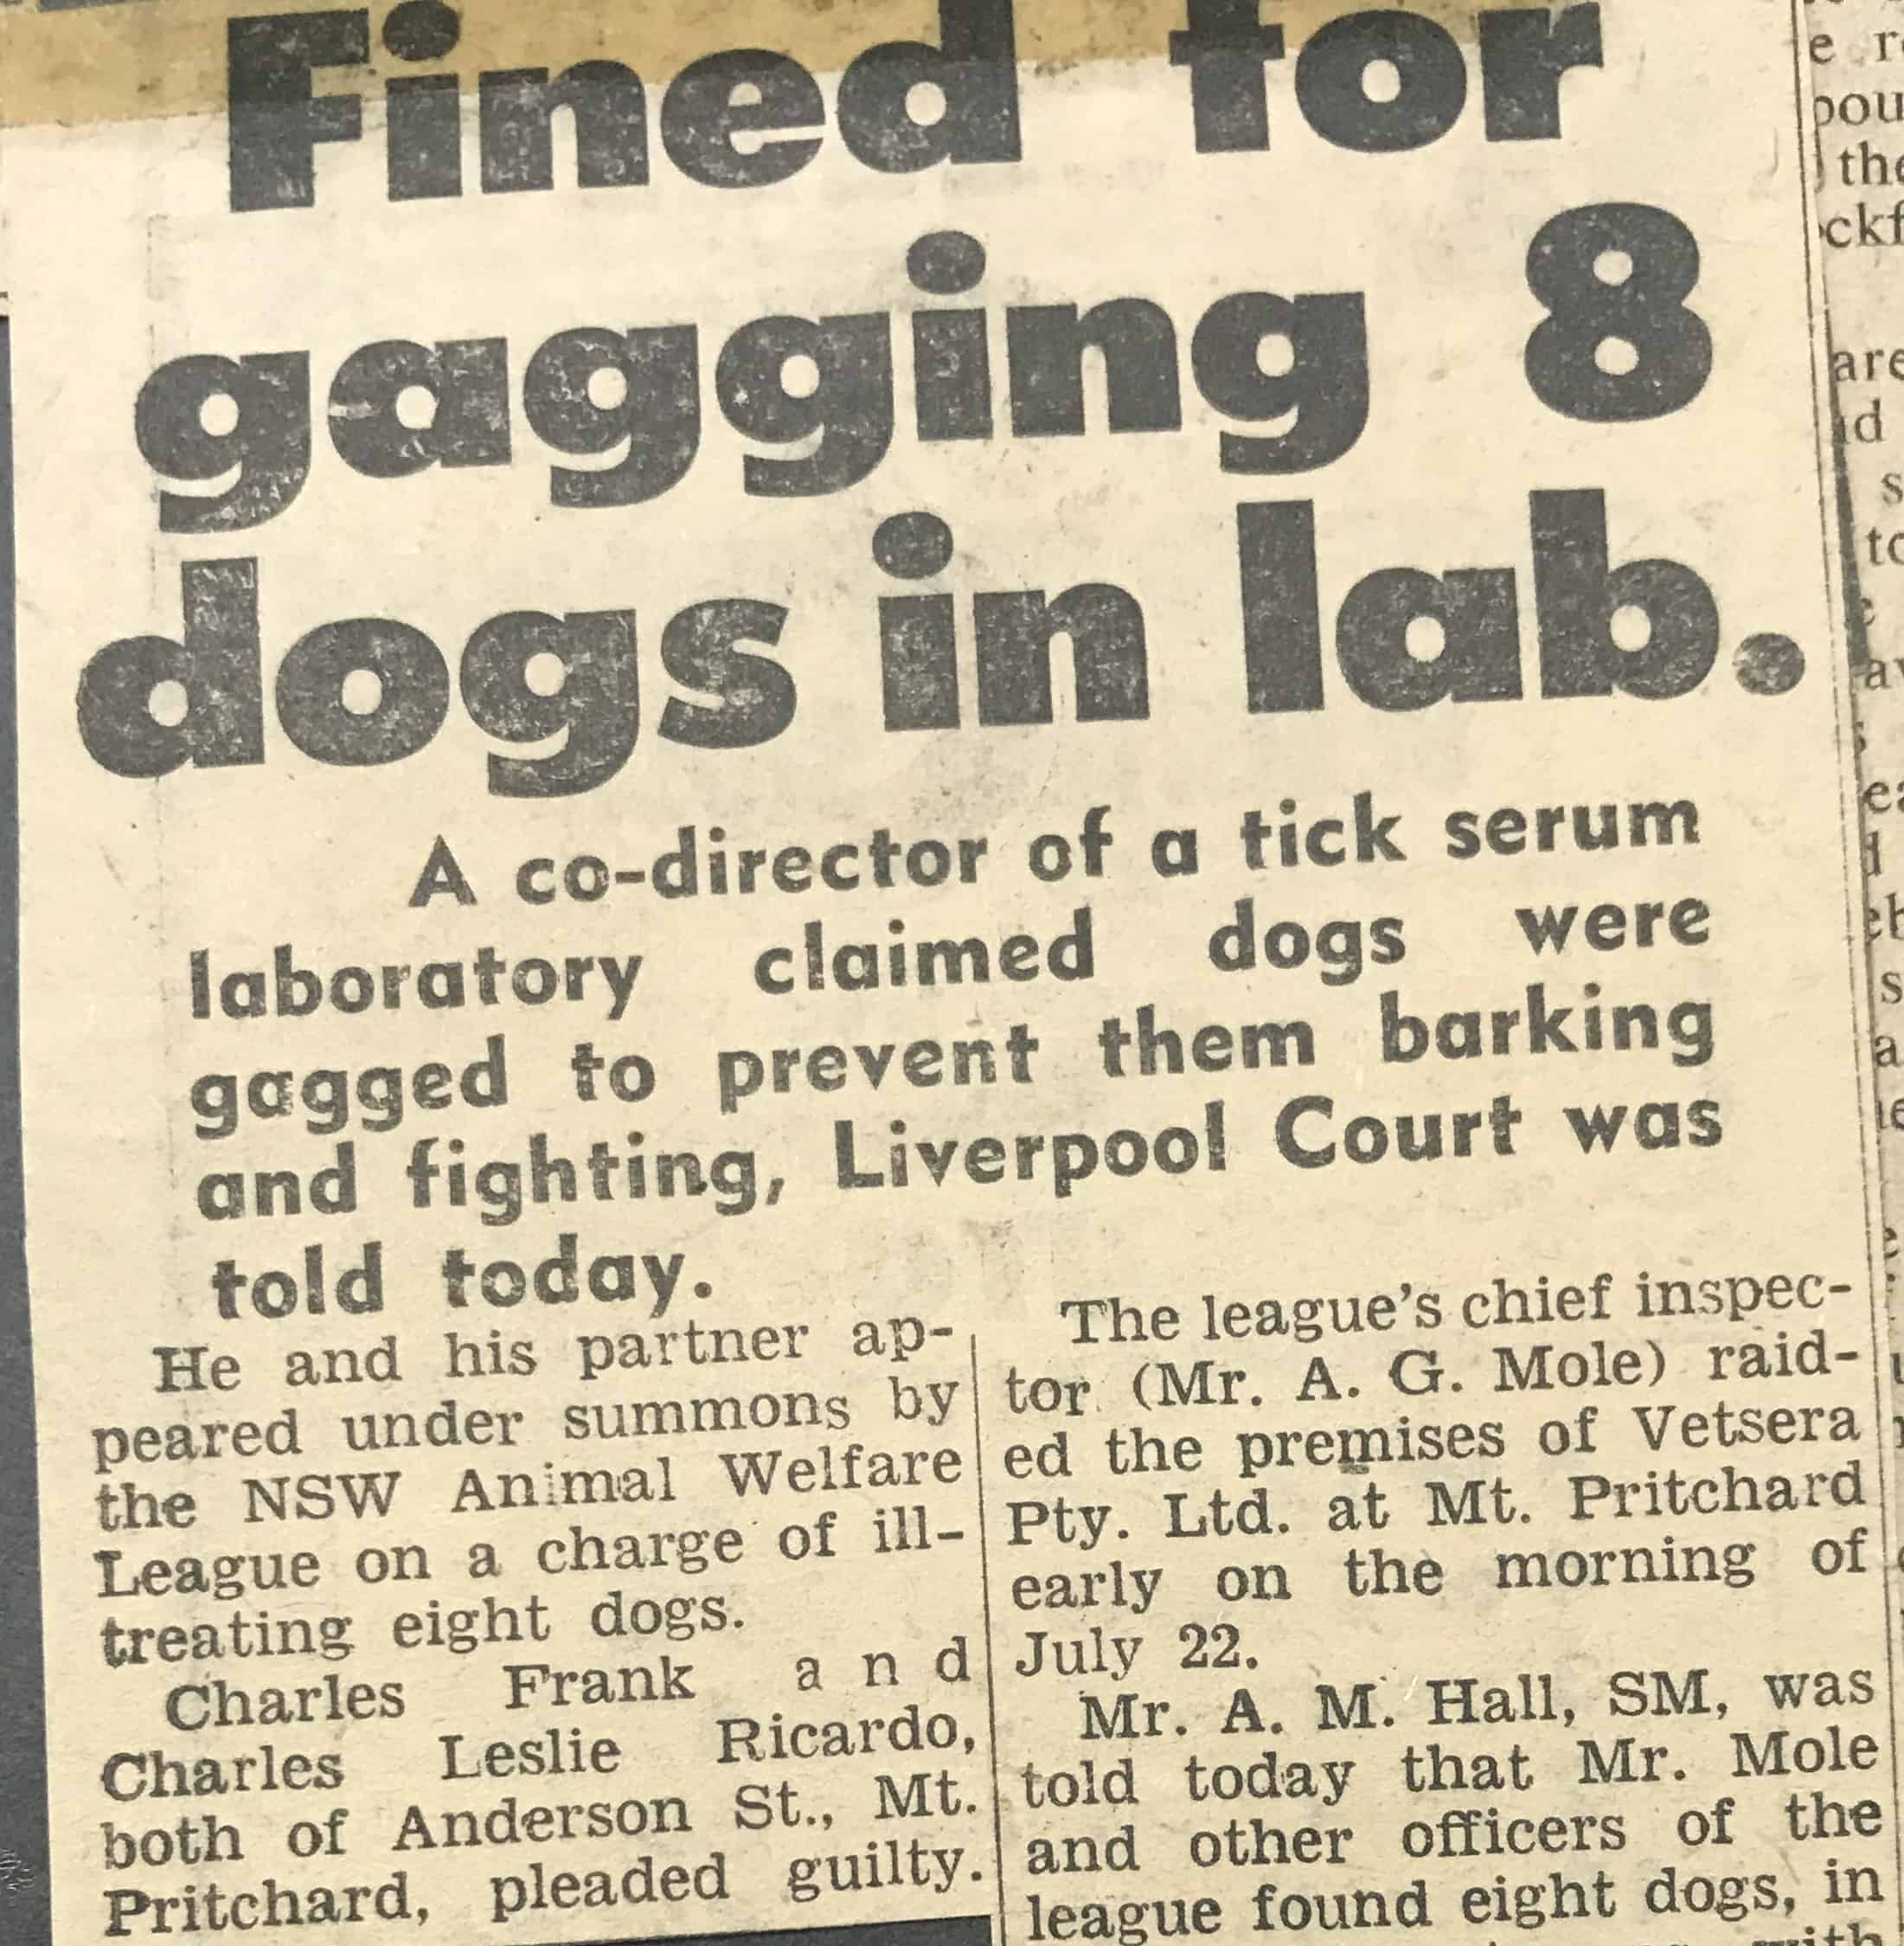 News article on a prosecution of a laboratory who gagged dogs